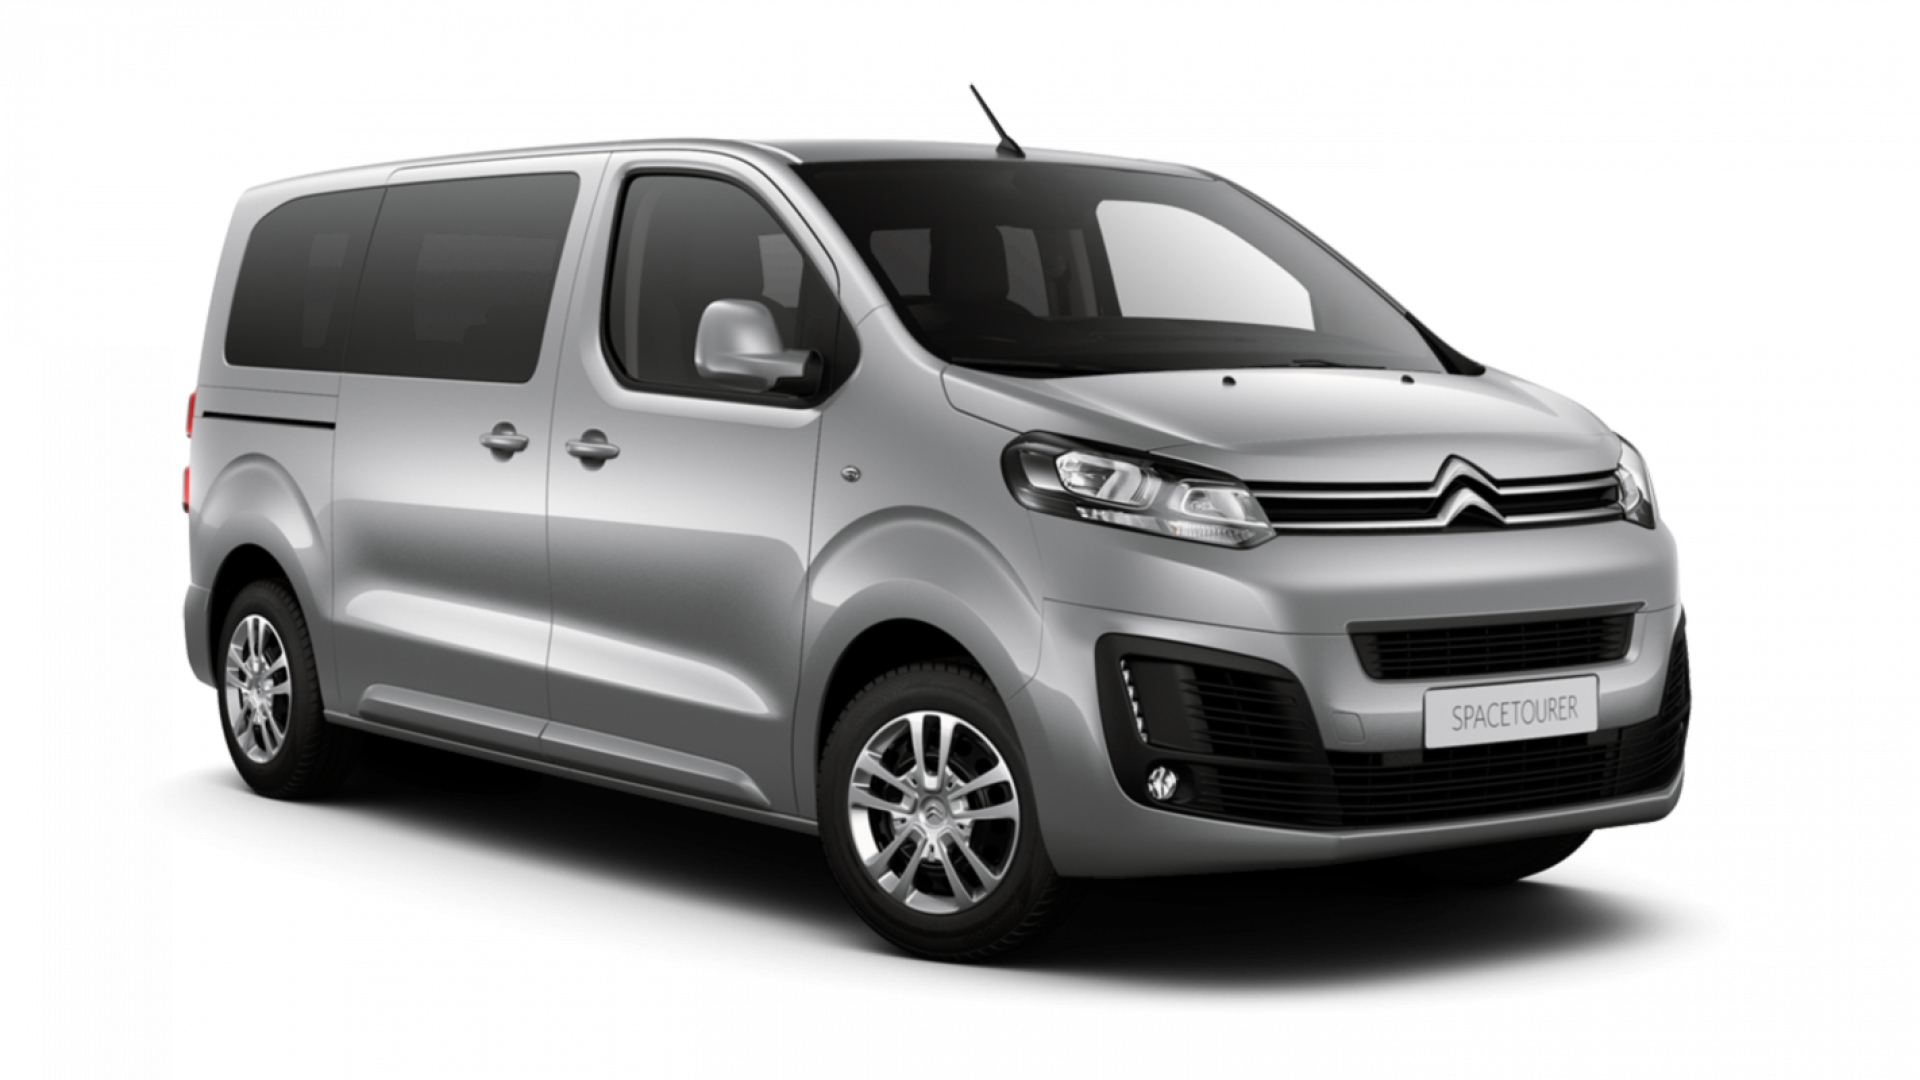 new citroen space tourer estate 1 6 bluehdi business xs 9 seat 5dr robins and day. Black Bedroom Furniture Sets. Home Design Ideas